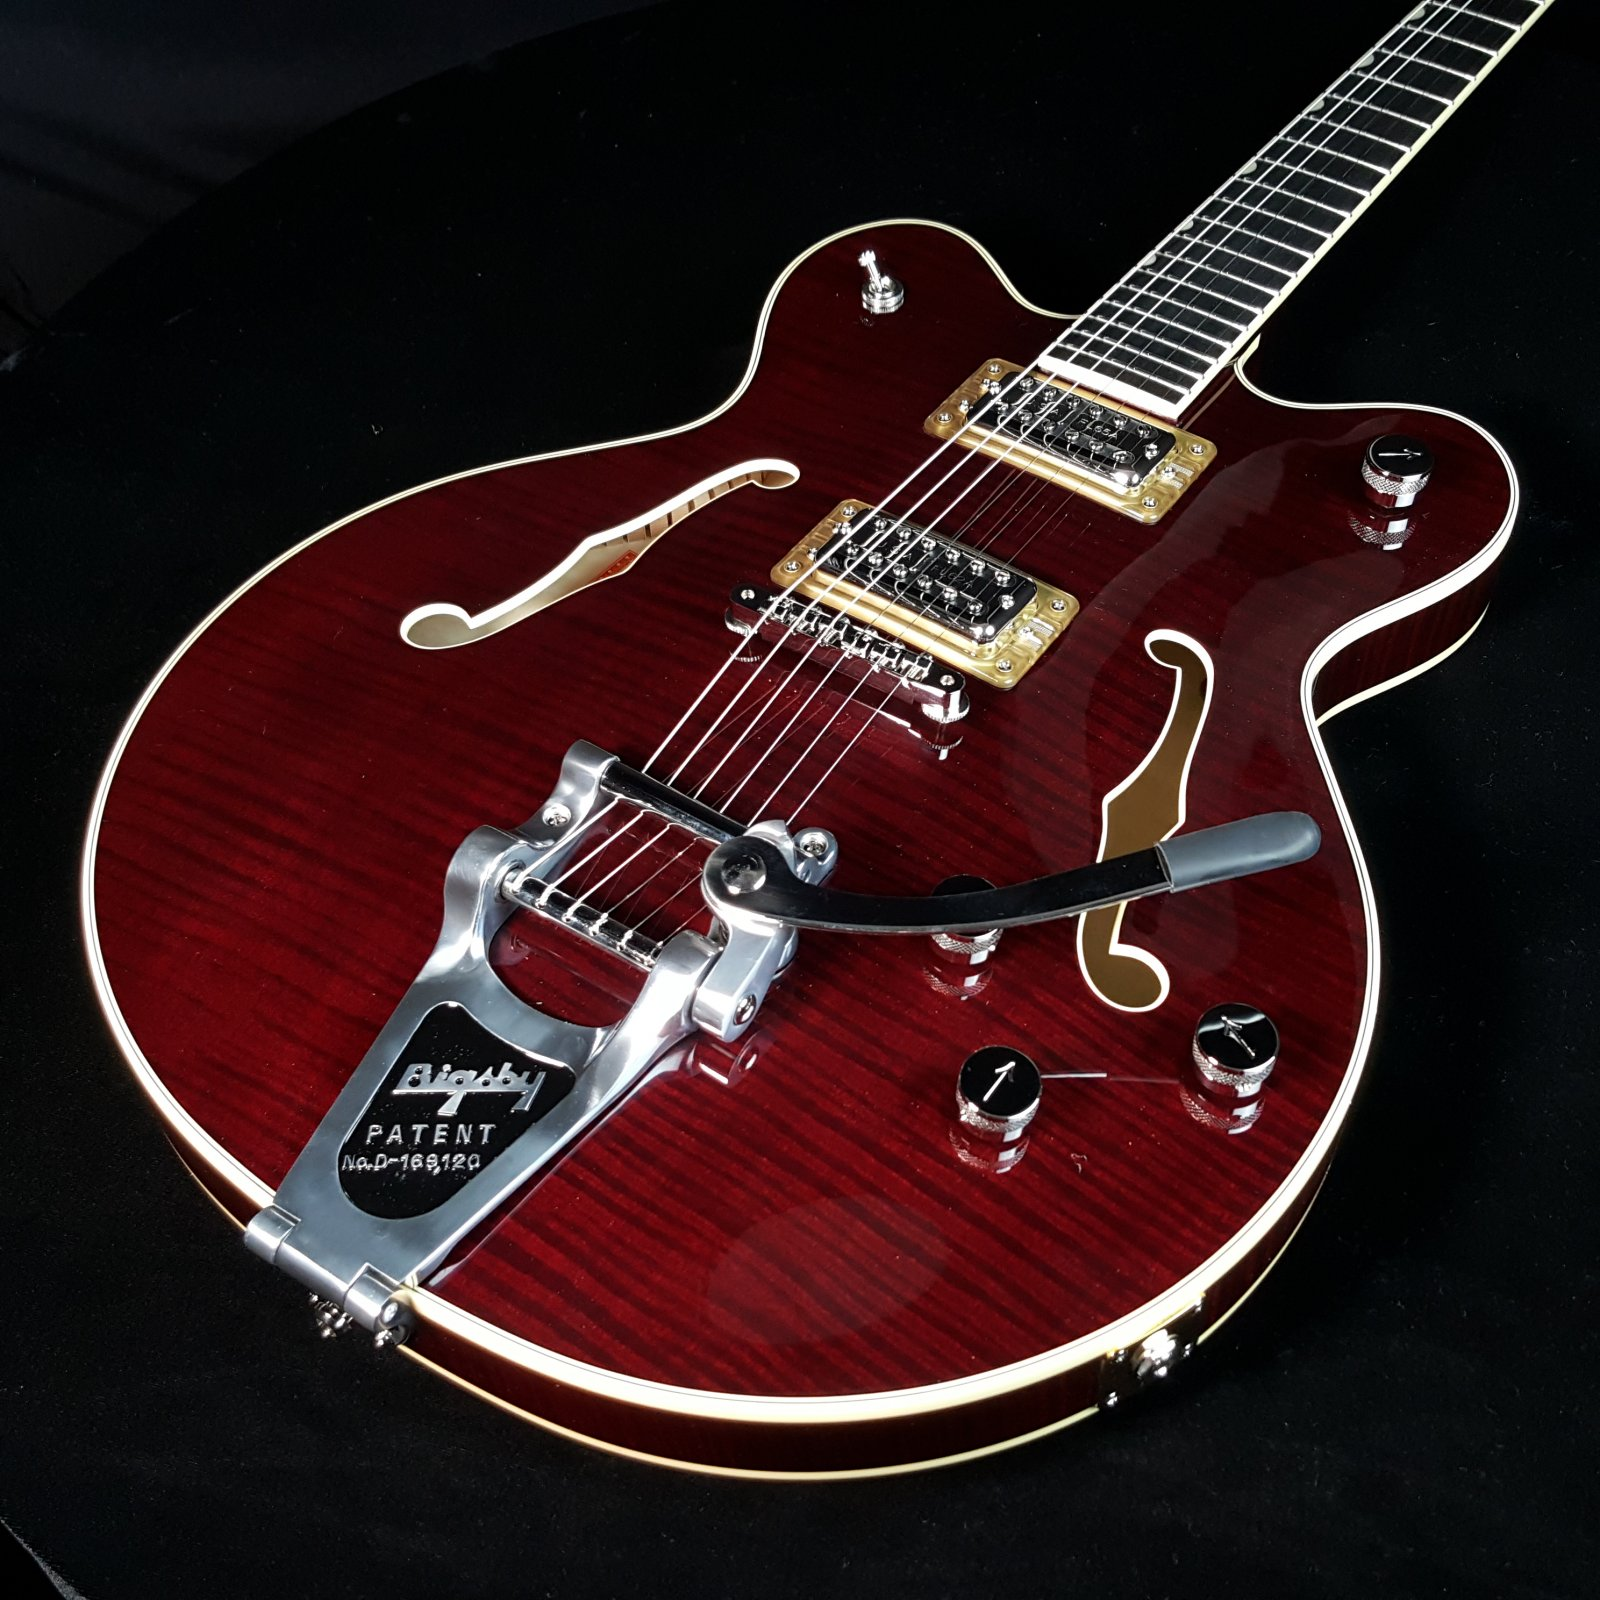 Gretsch G6609TFM Players Limited Edition Broadkaster Cherry with Case